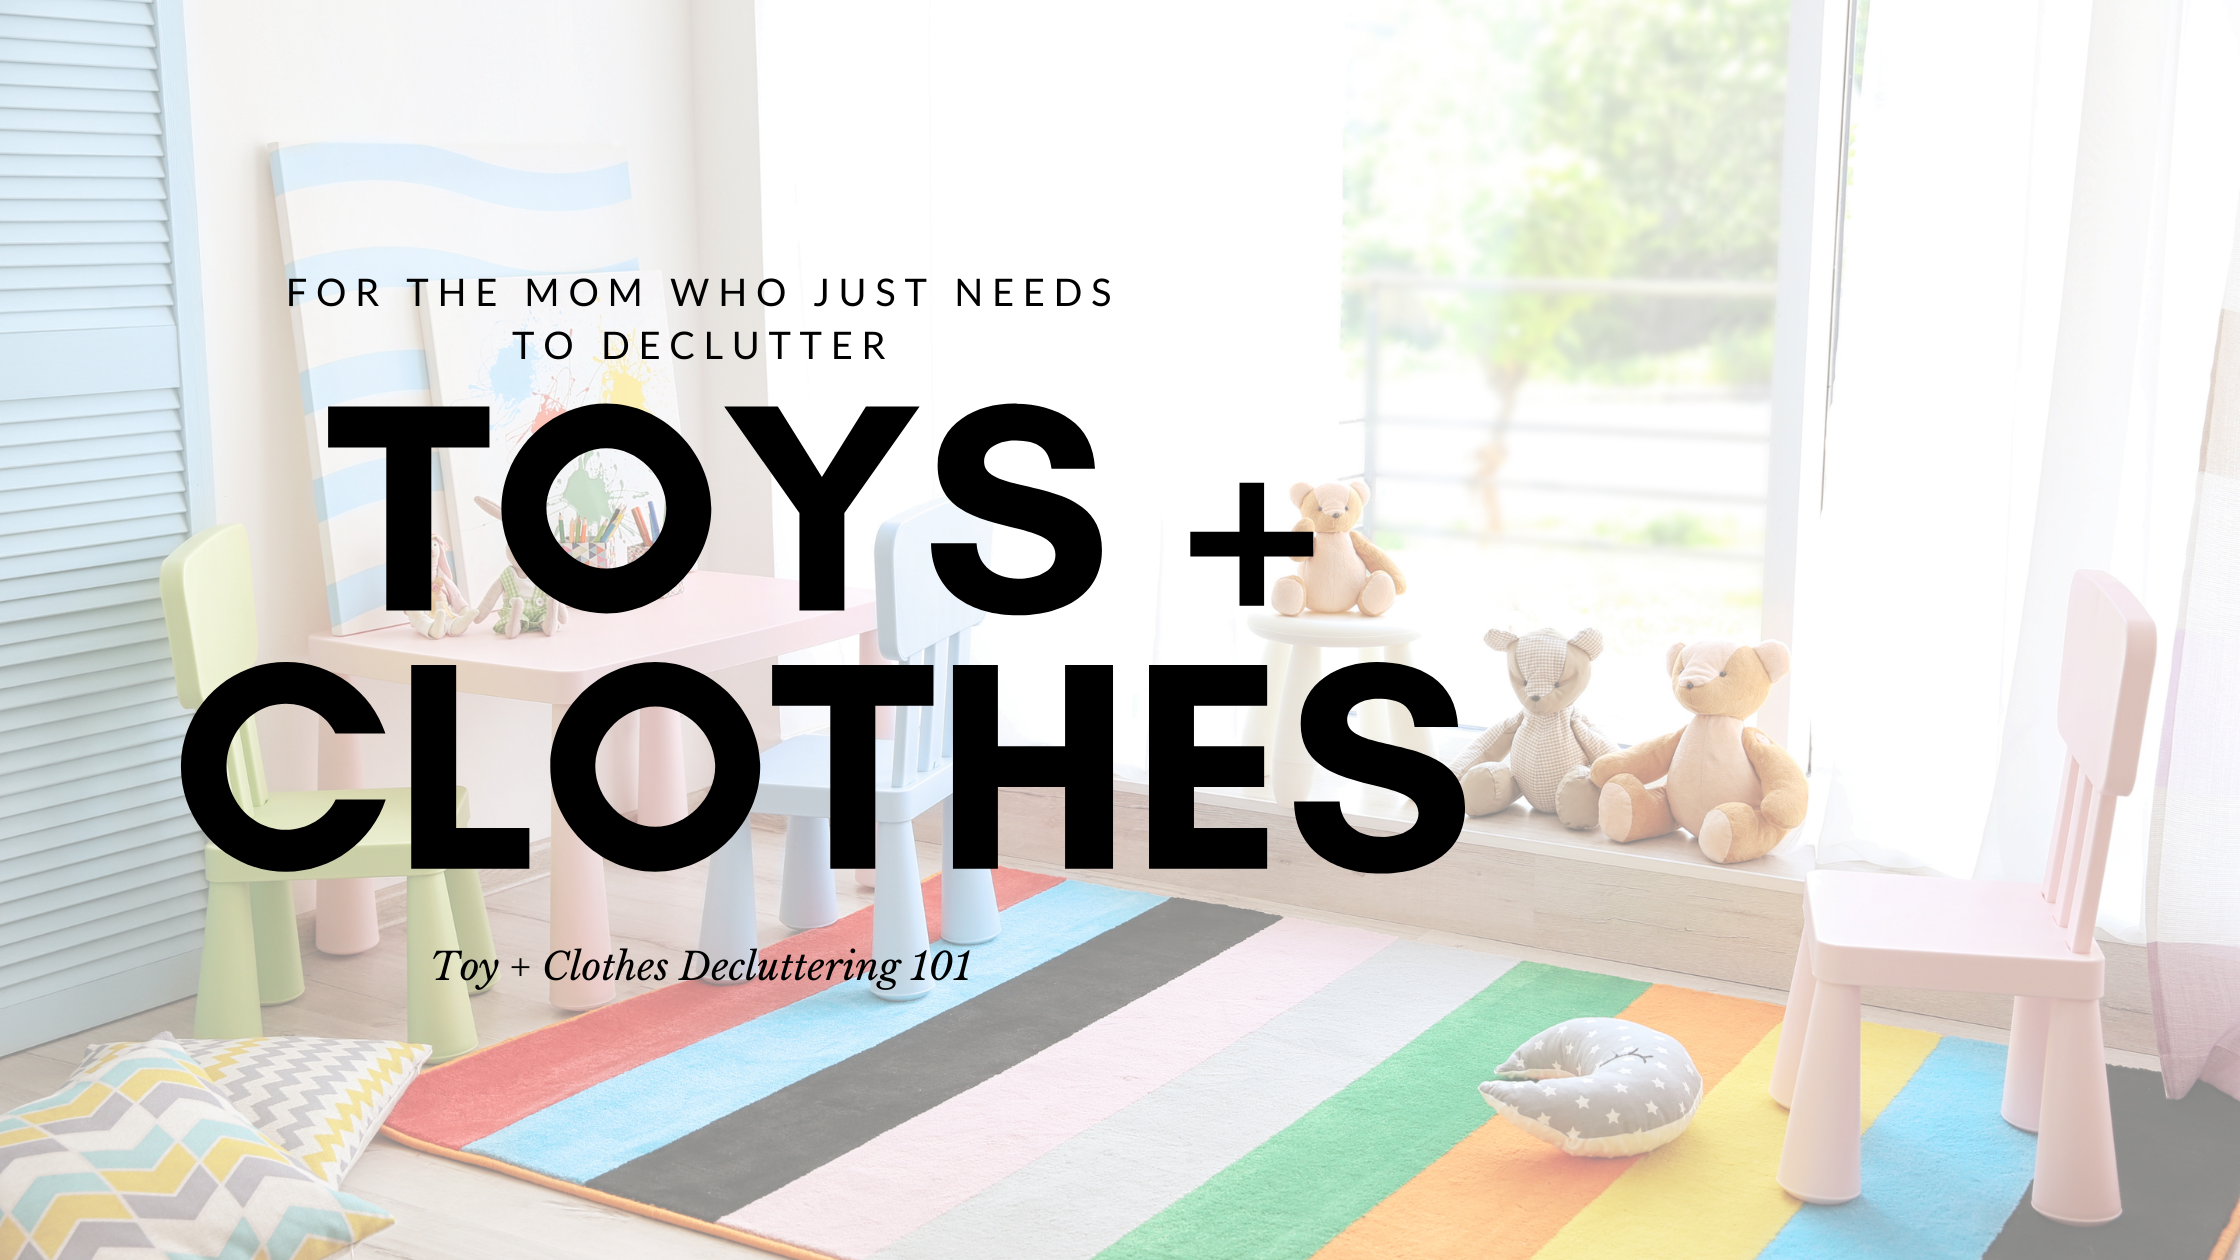 """A playroom image with a rainbow rug, wooden shelves, and a combination of stuffed animals and building blocks. The text overlay reads """"for the mom who needs to declutter toys + clothes. Toy + Clothes Decluttering 101"""